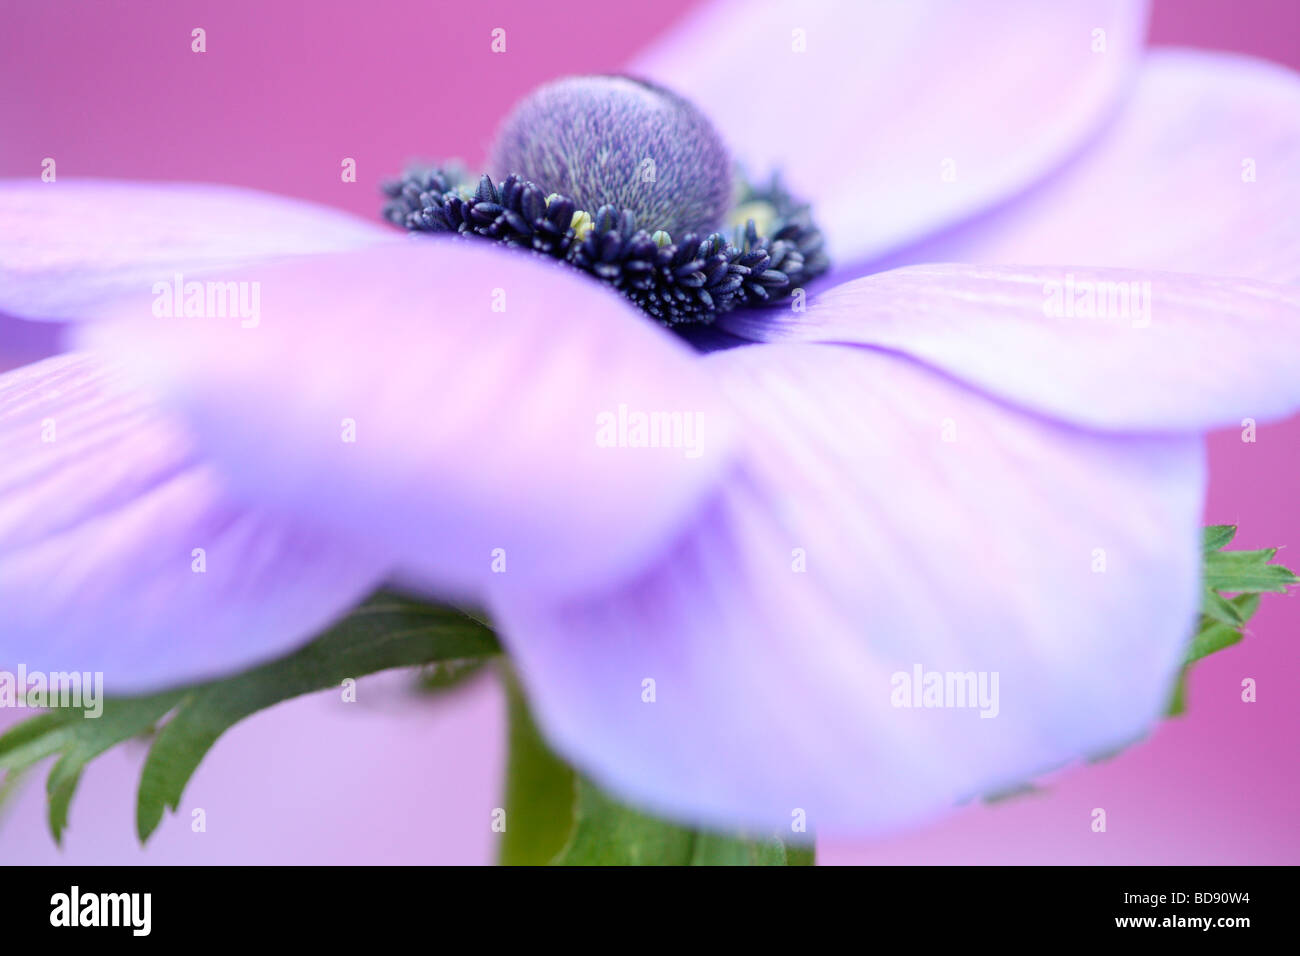 soft and romantic purple anemone flower head on lilac fine art photography Jane Ann Butler Photography JABP532 - Stock Image